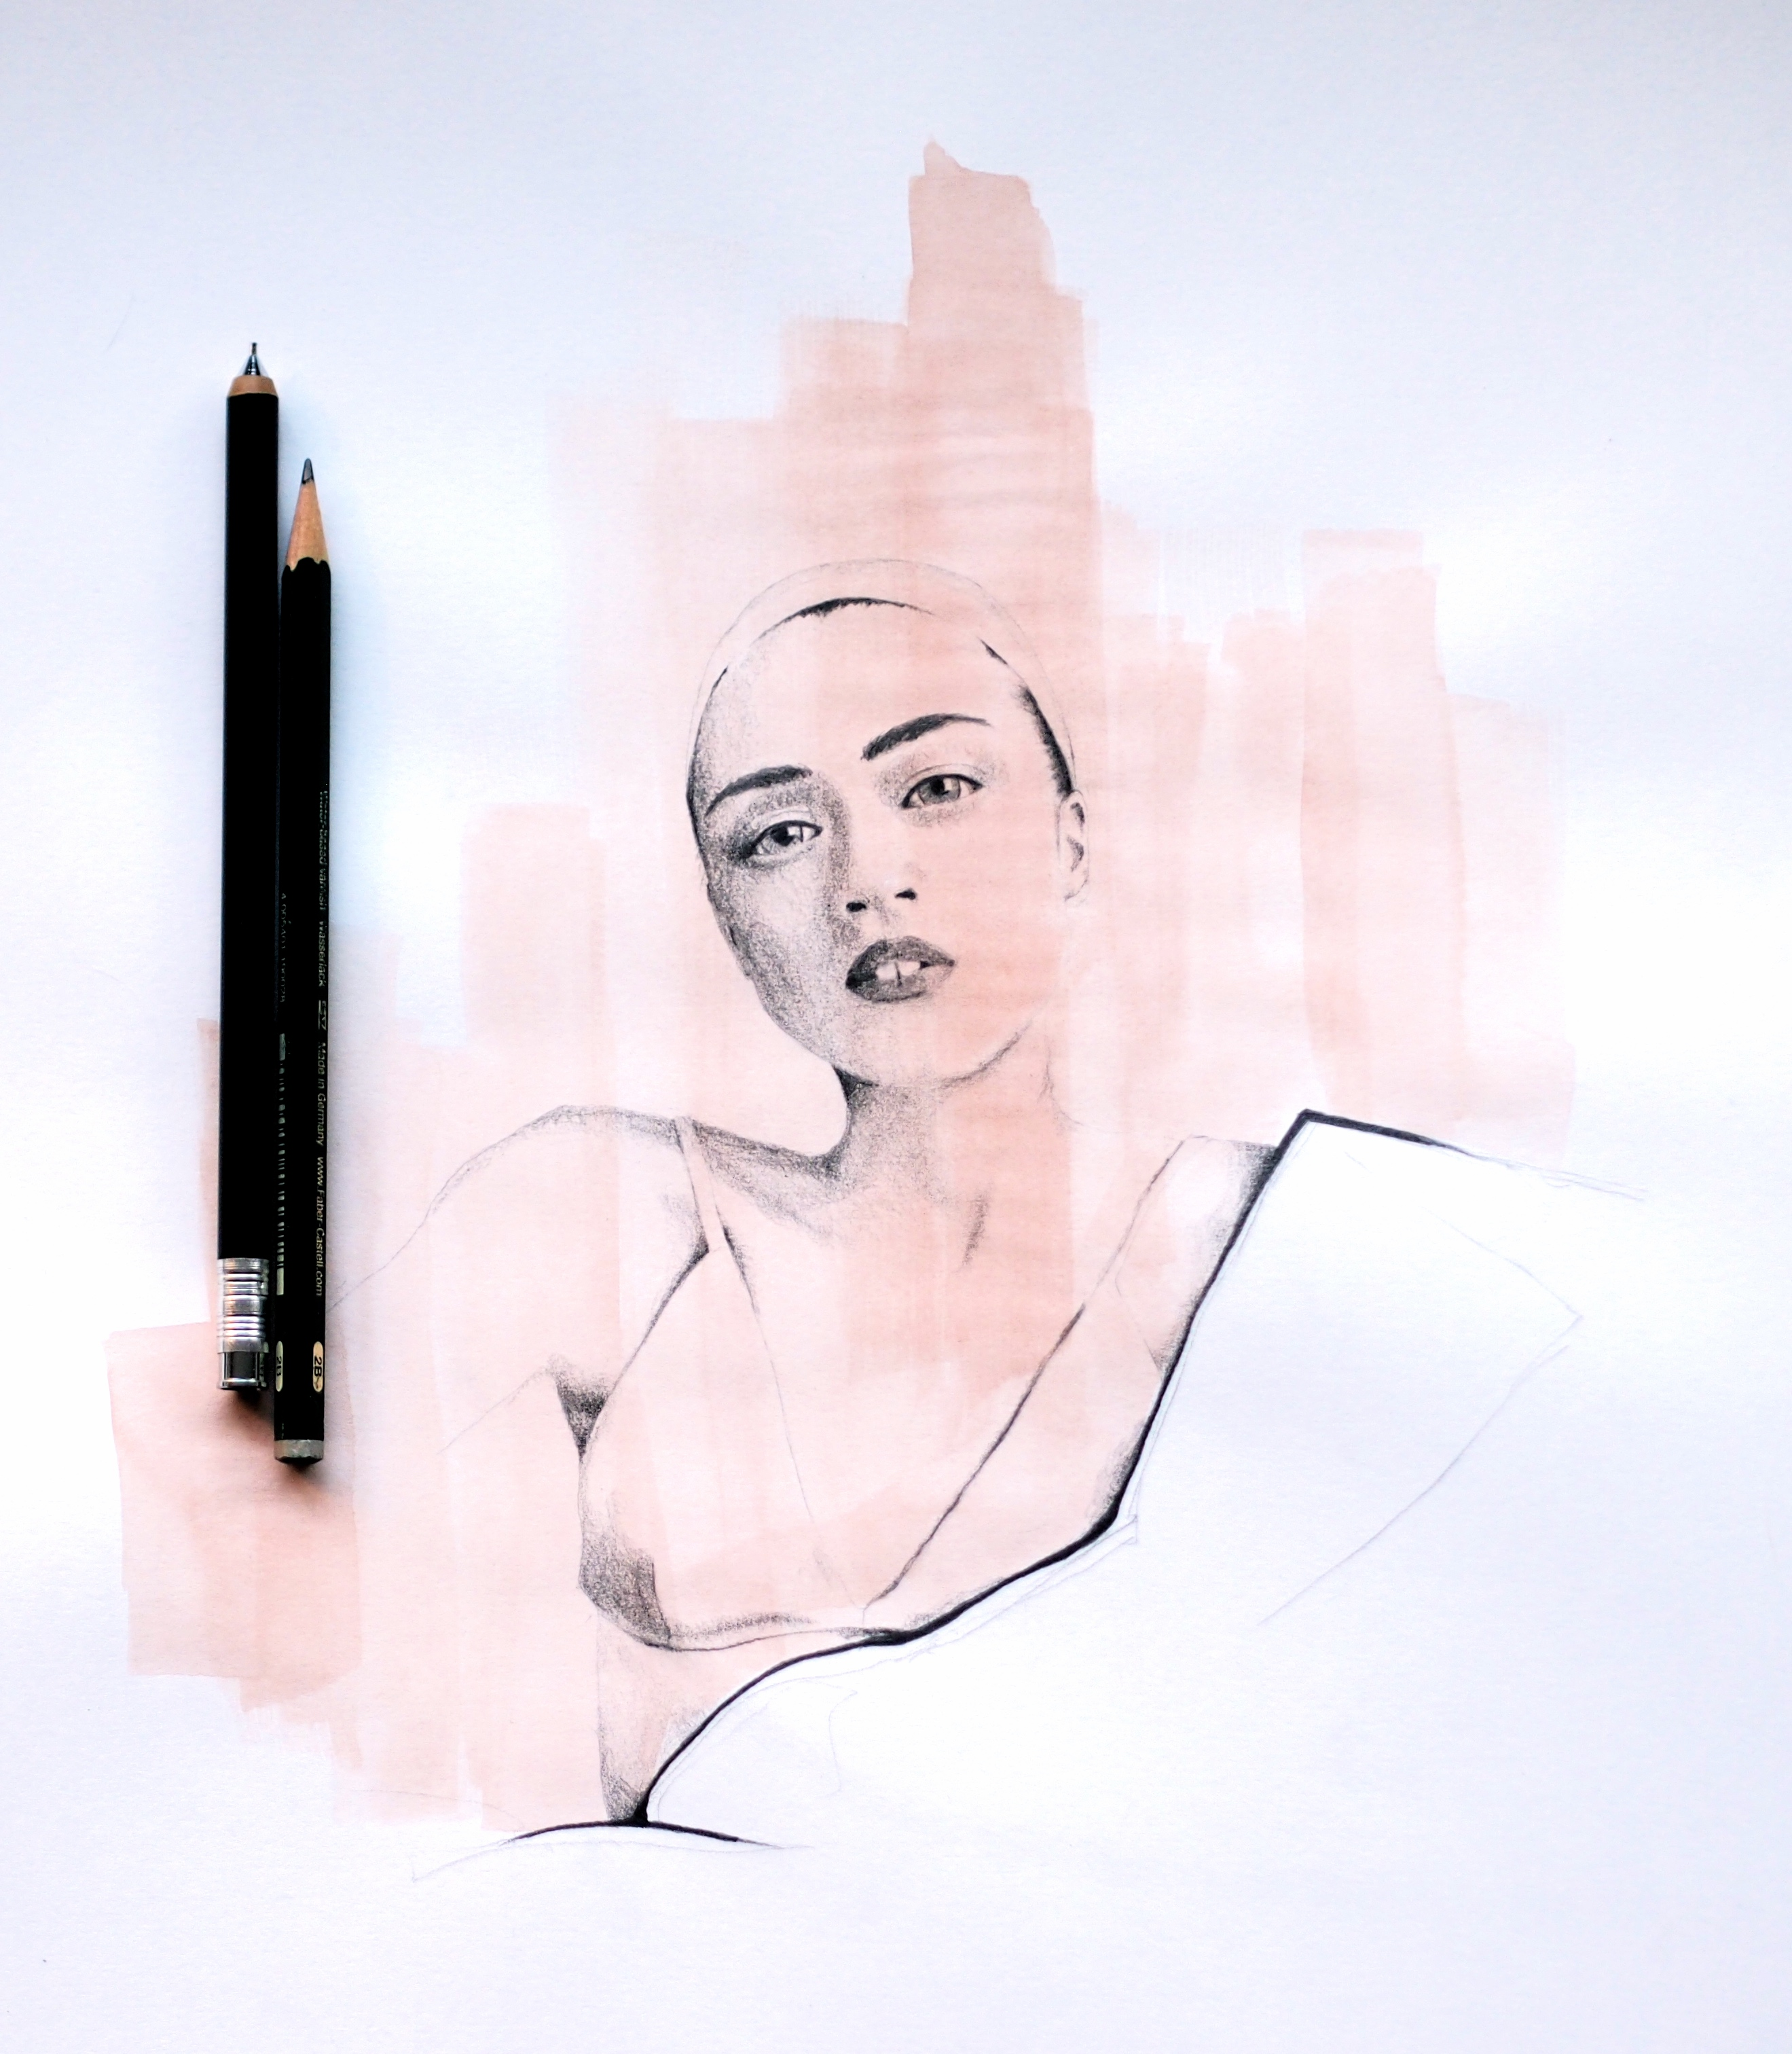 PENCIL SKETCH AND WATERCOLOUR FASHION ILLUSTRATION